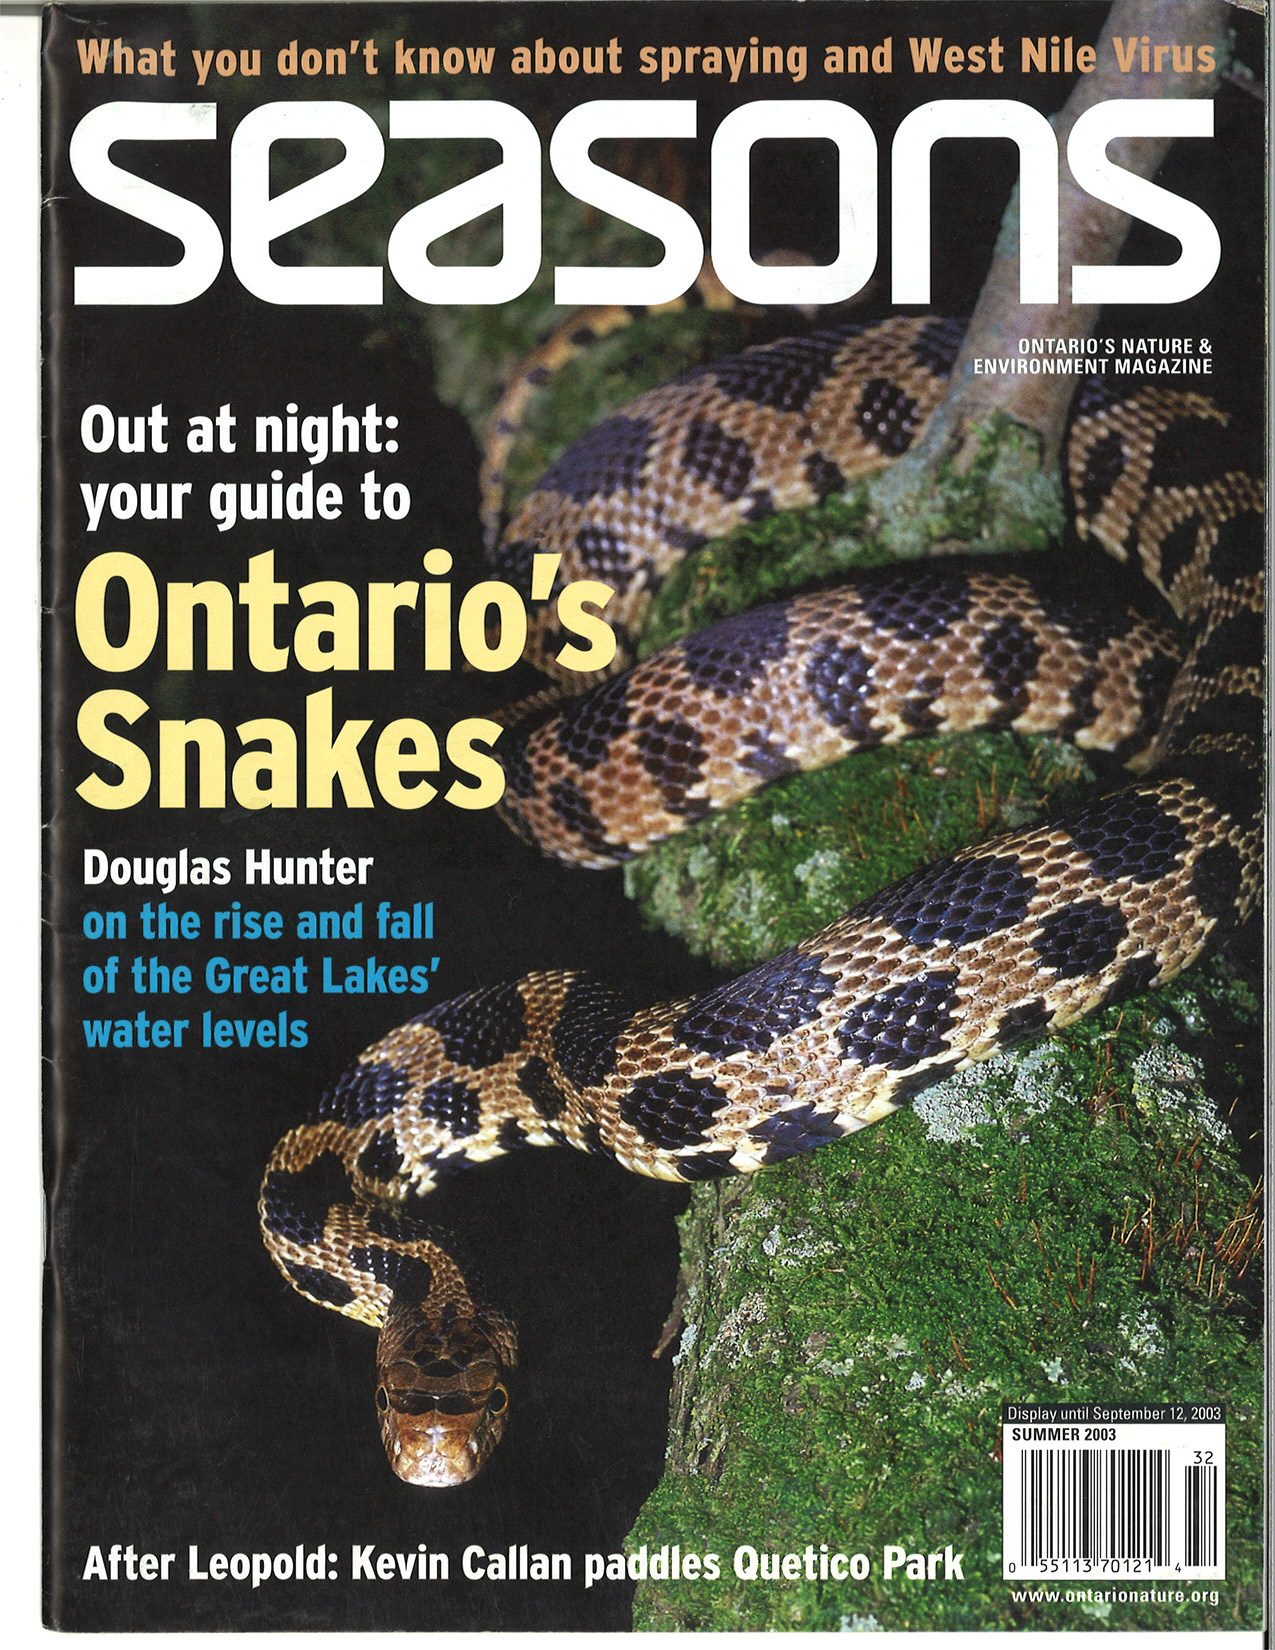 Seasons Summer 2003 Front Cover